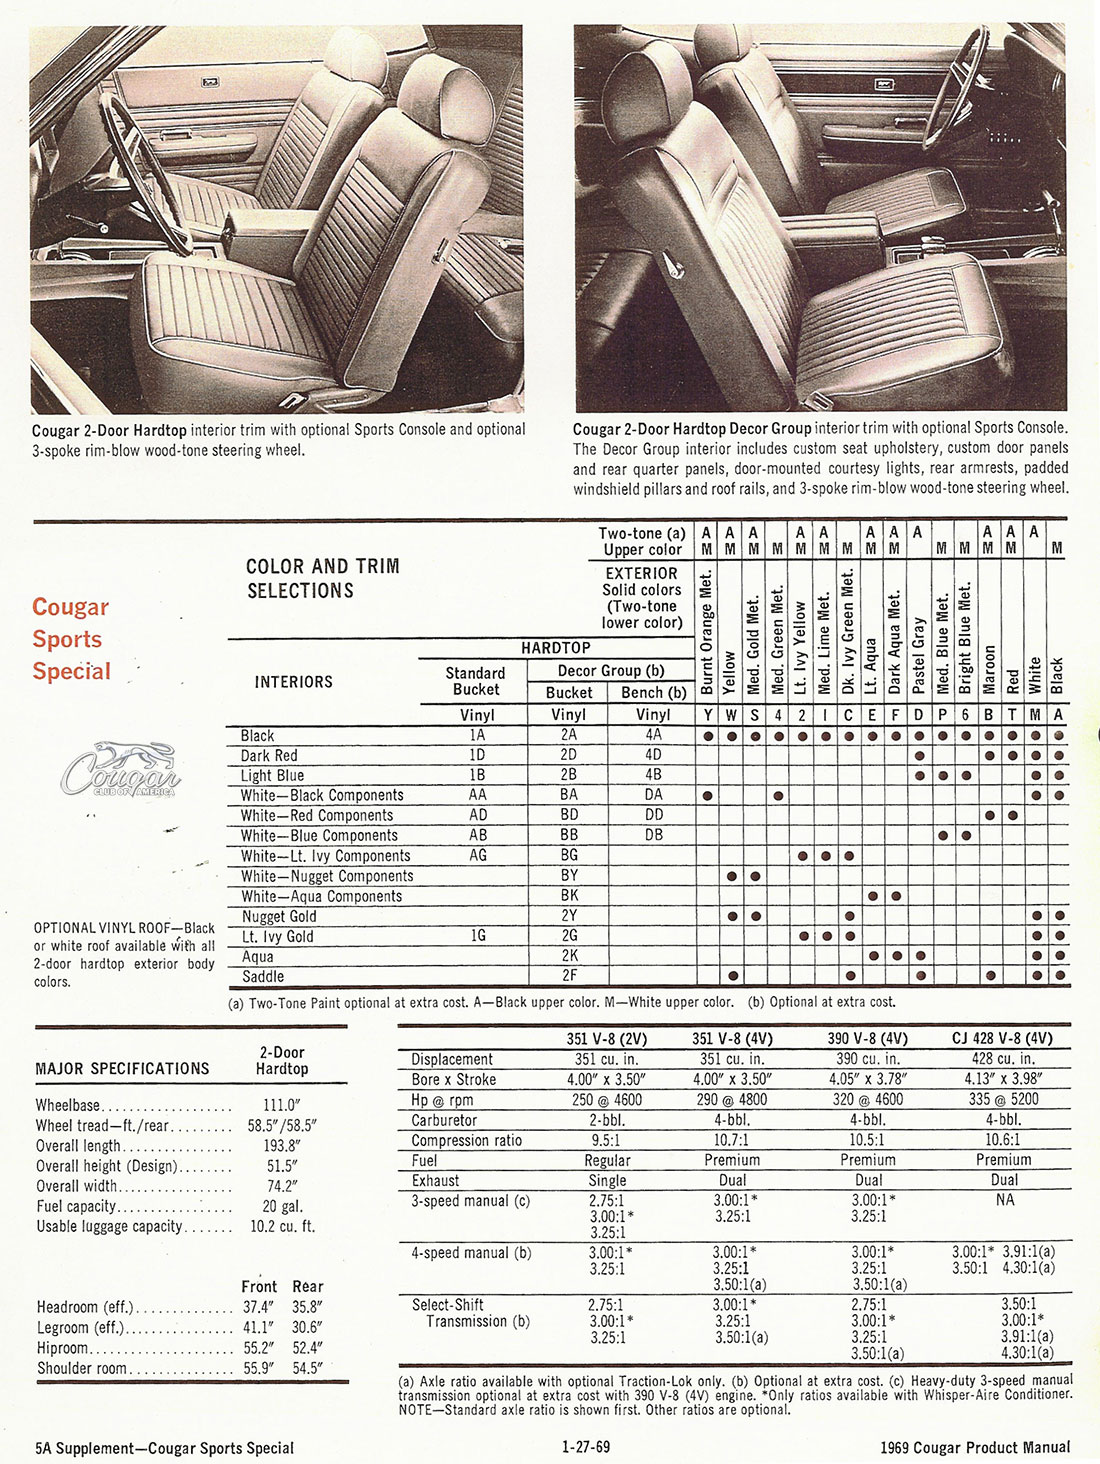 1969 Mercury Cougar Sports Special Product Manual Supplement Page 2 of 2